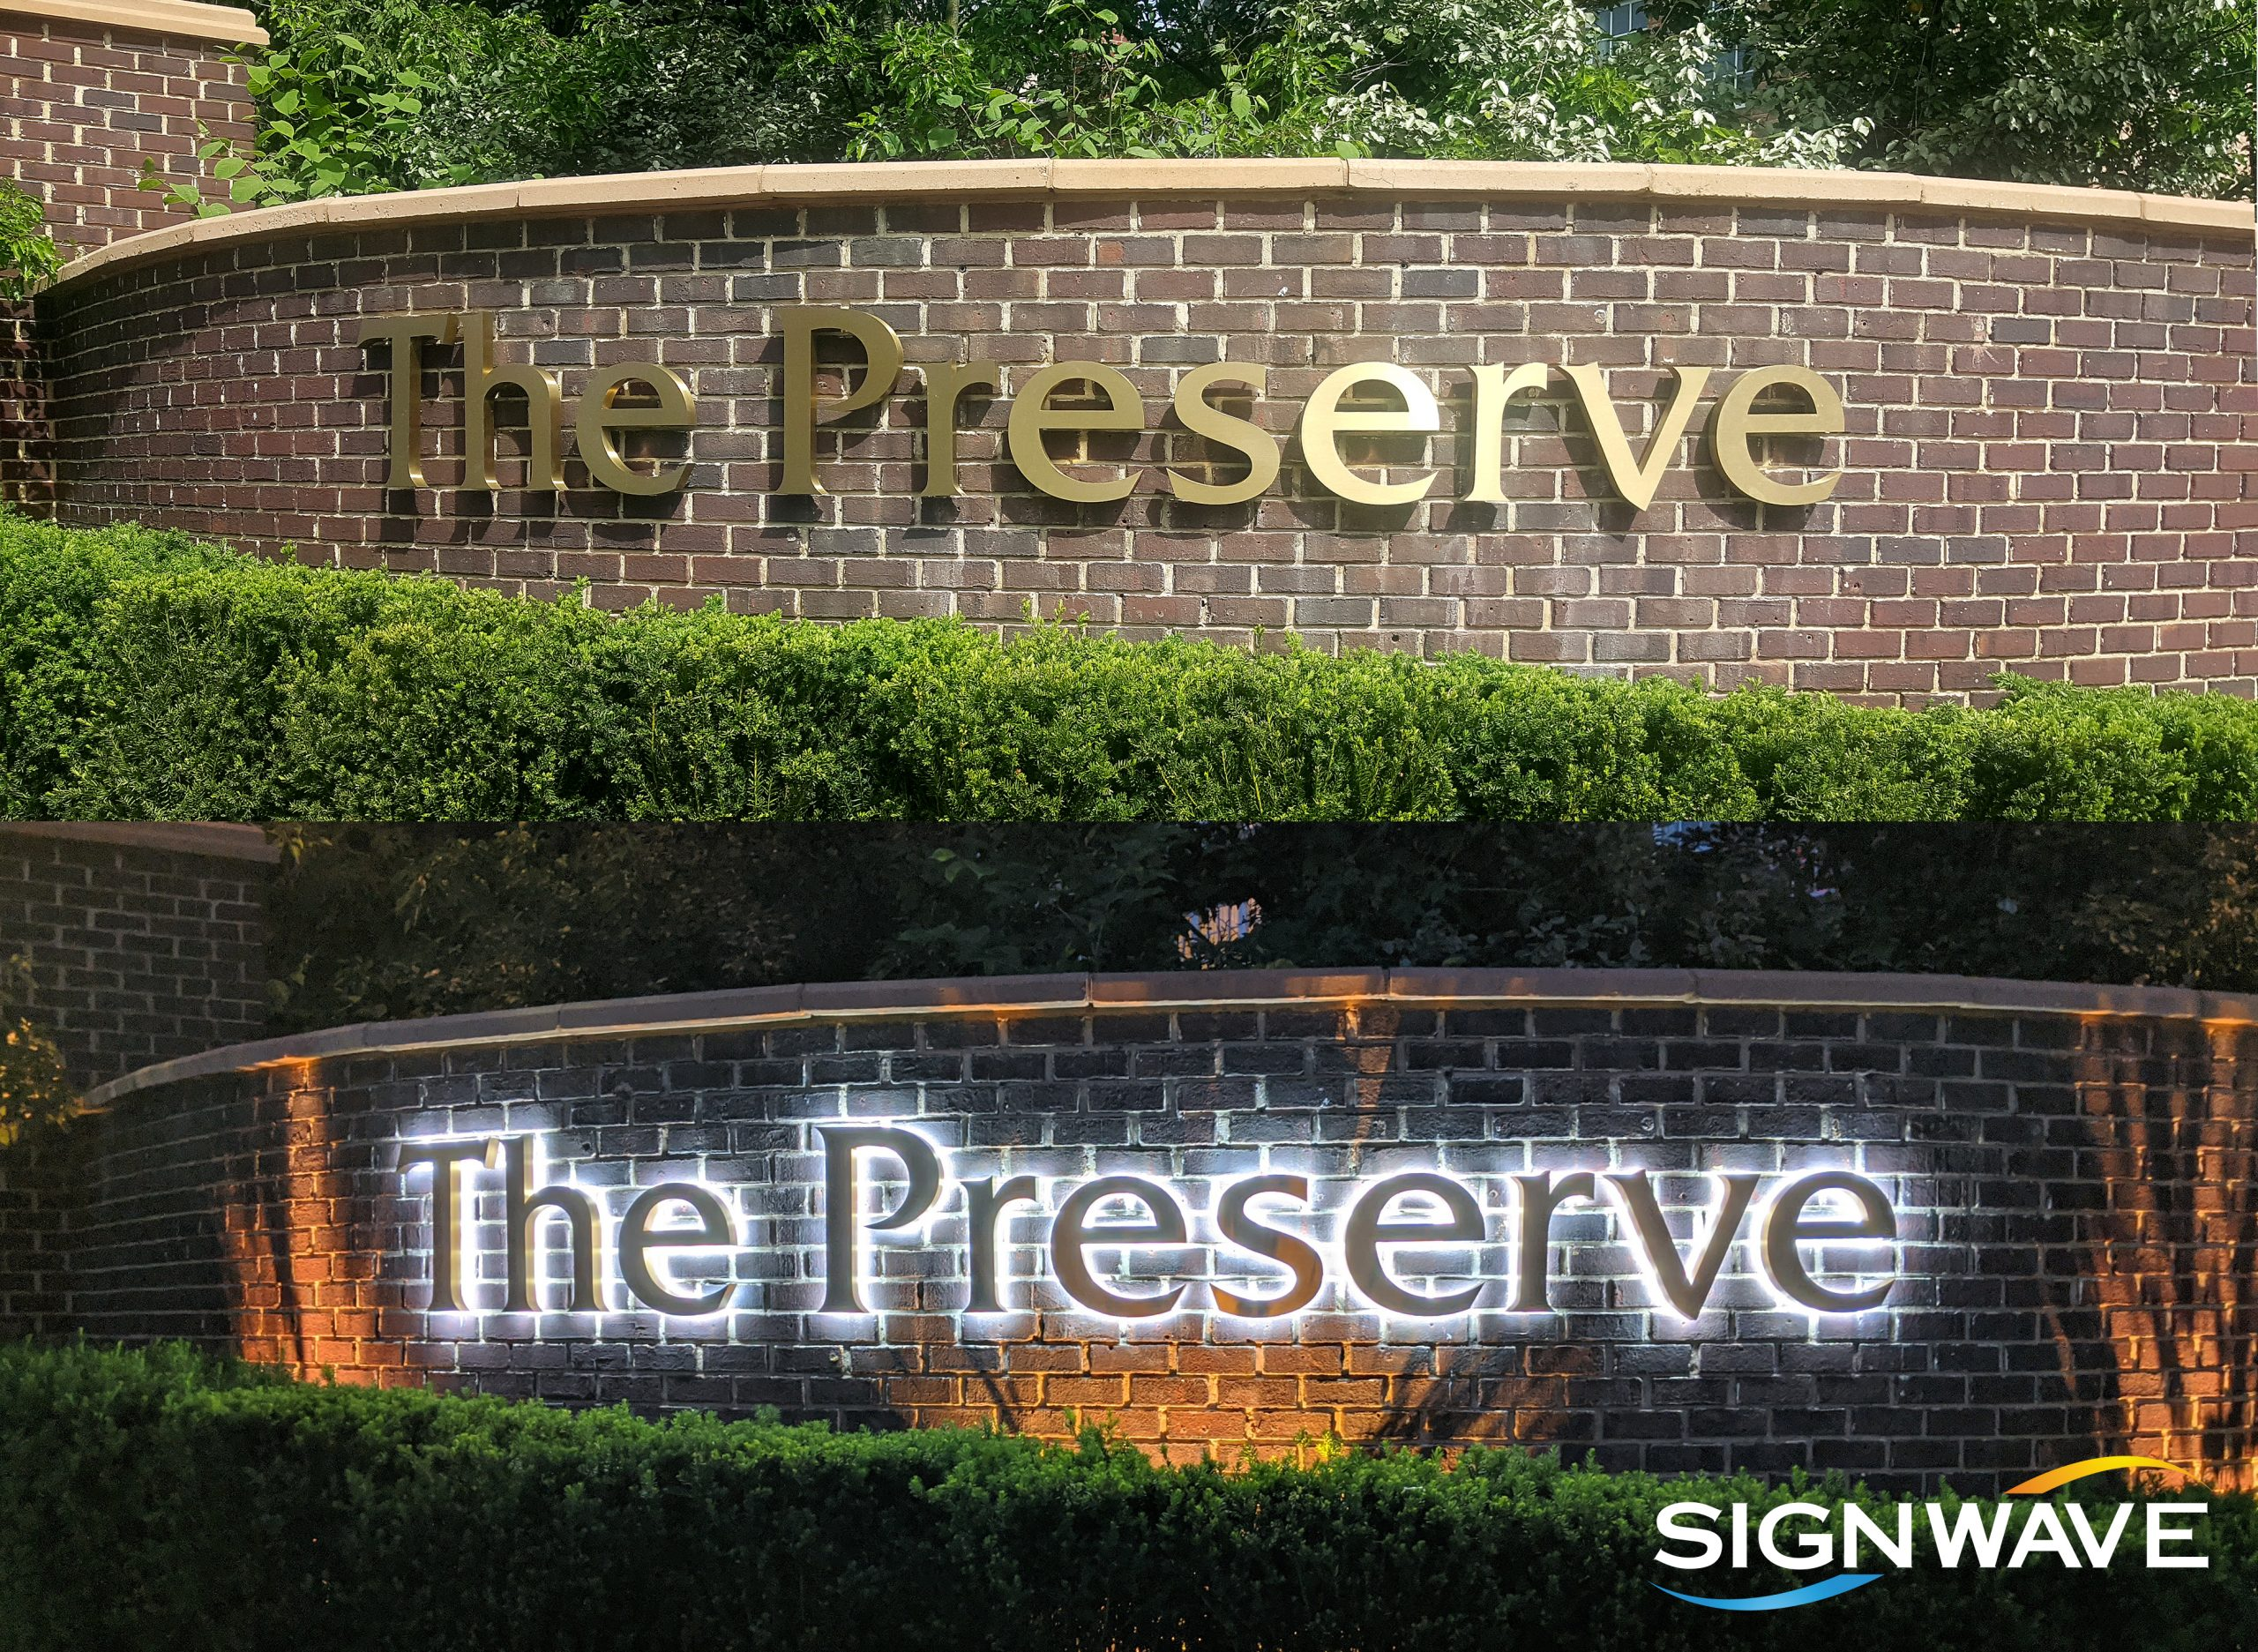 closeup view of The Preserve sign day and night version